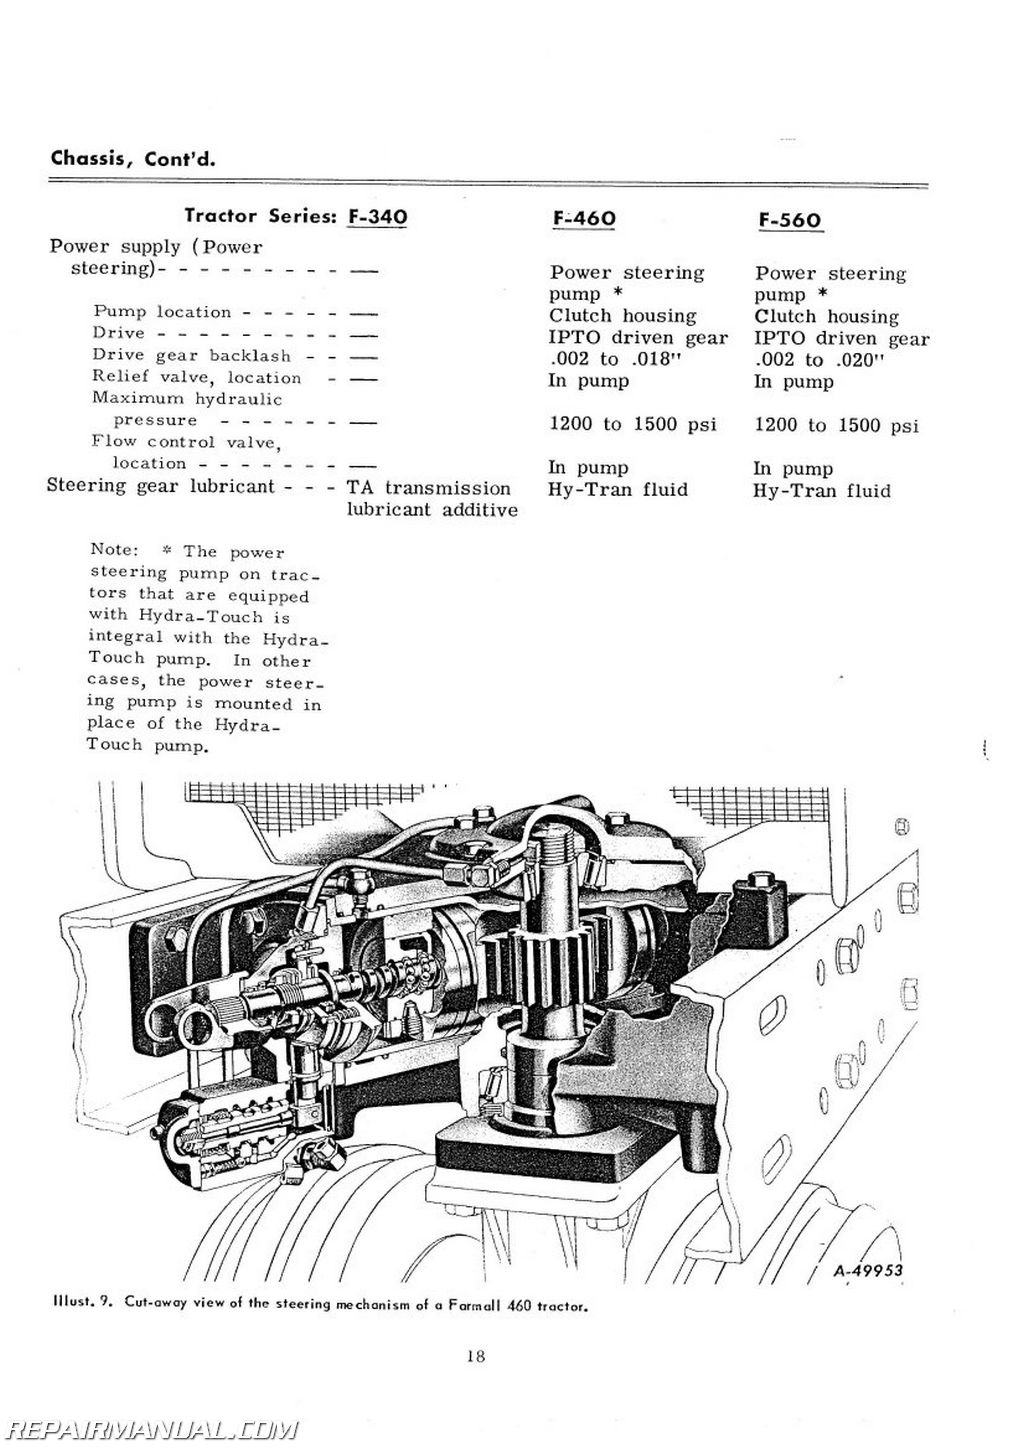 power steering pump rebuild instructions